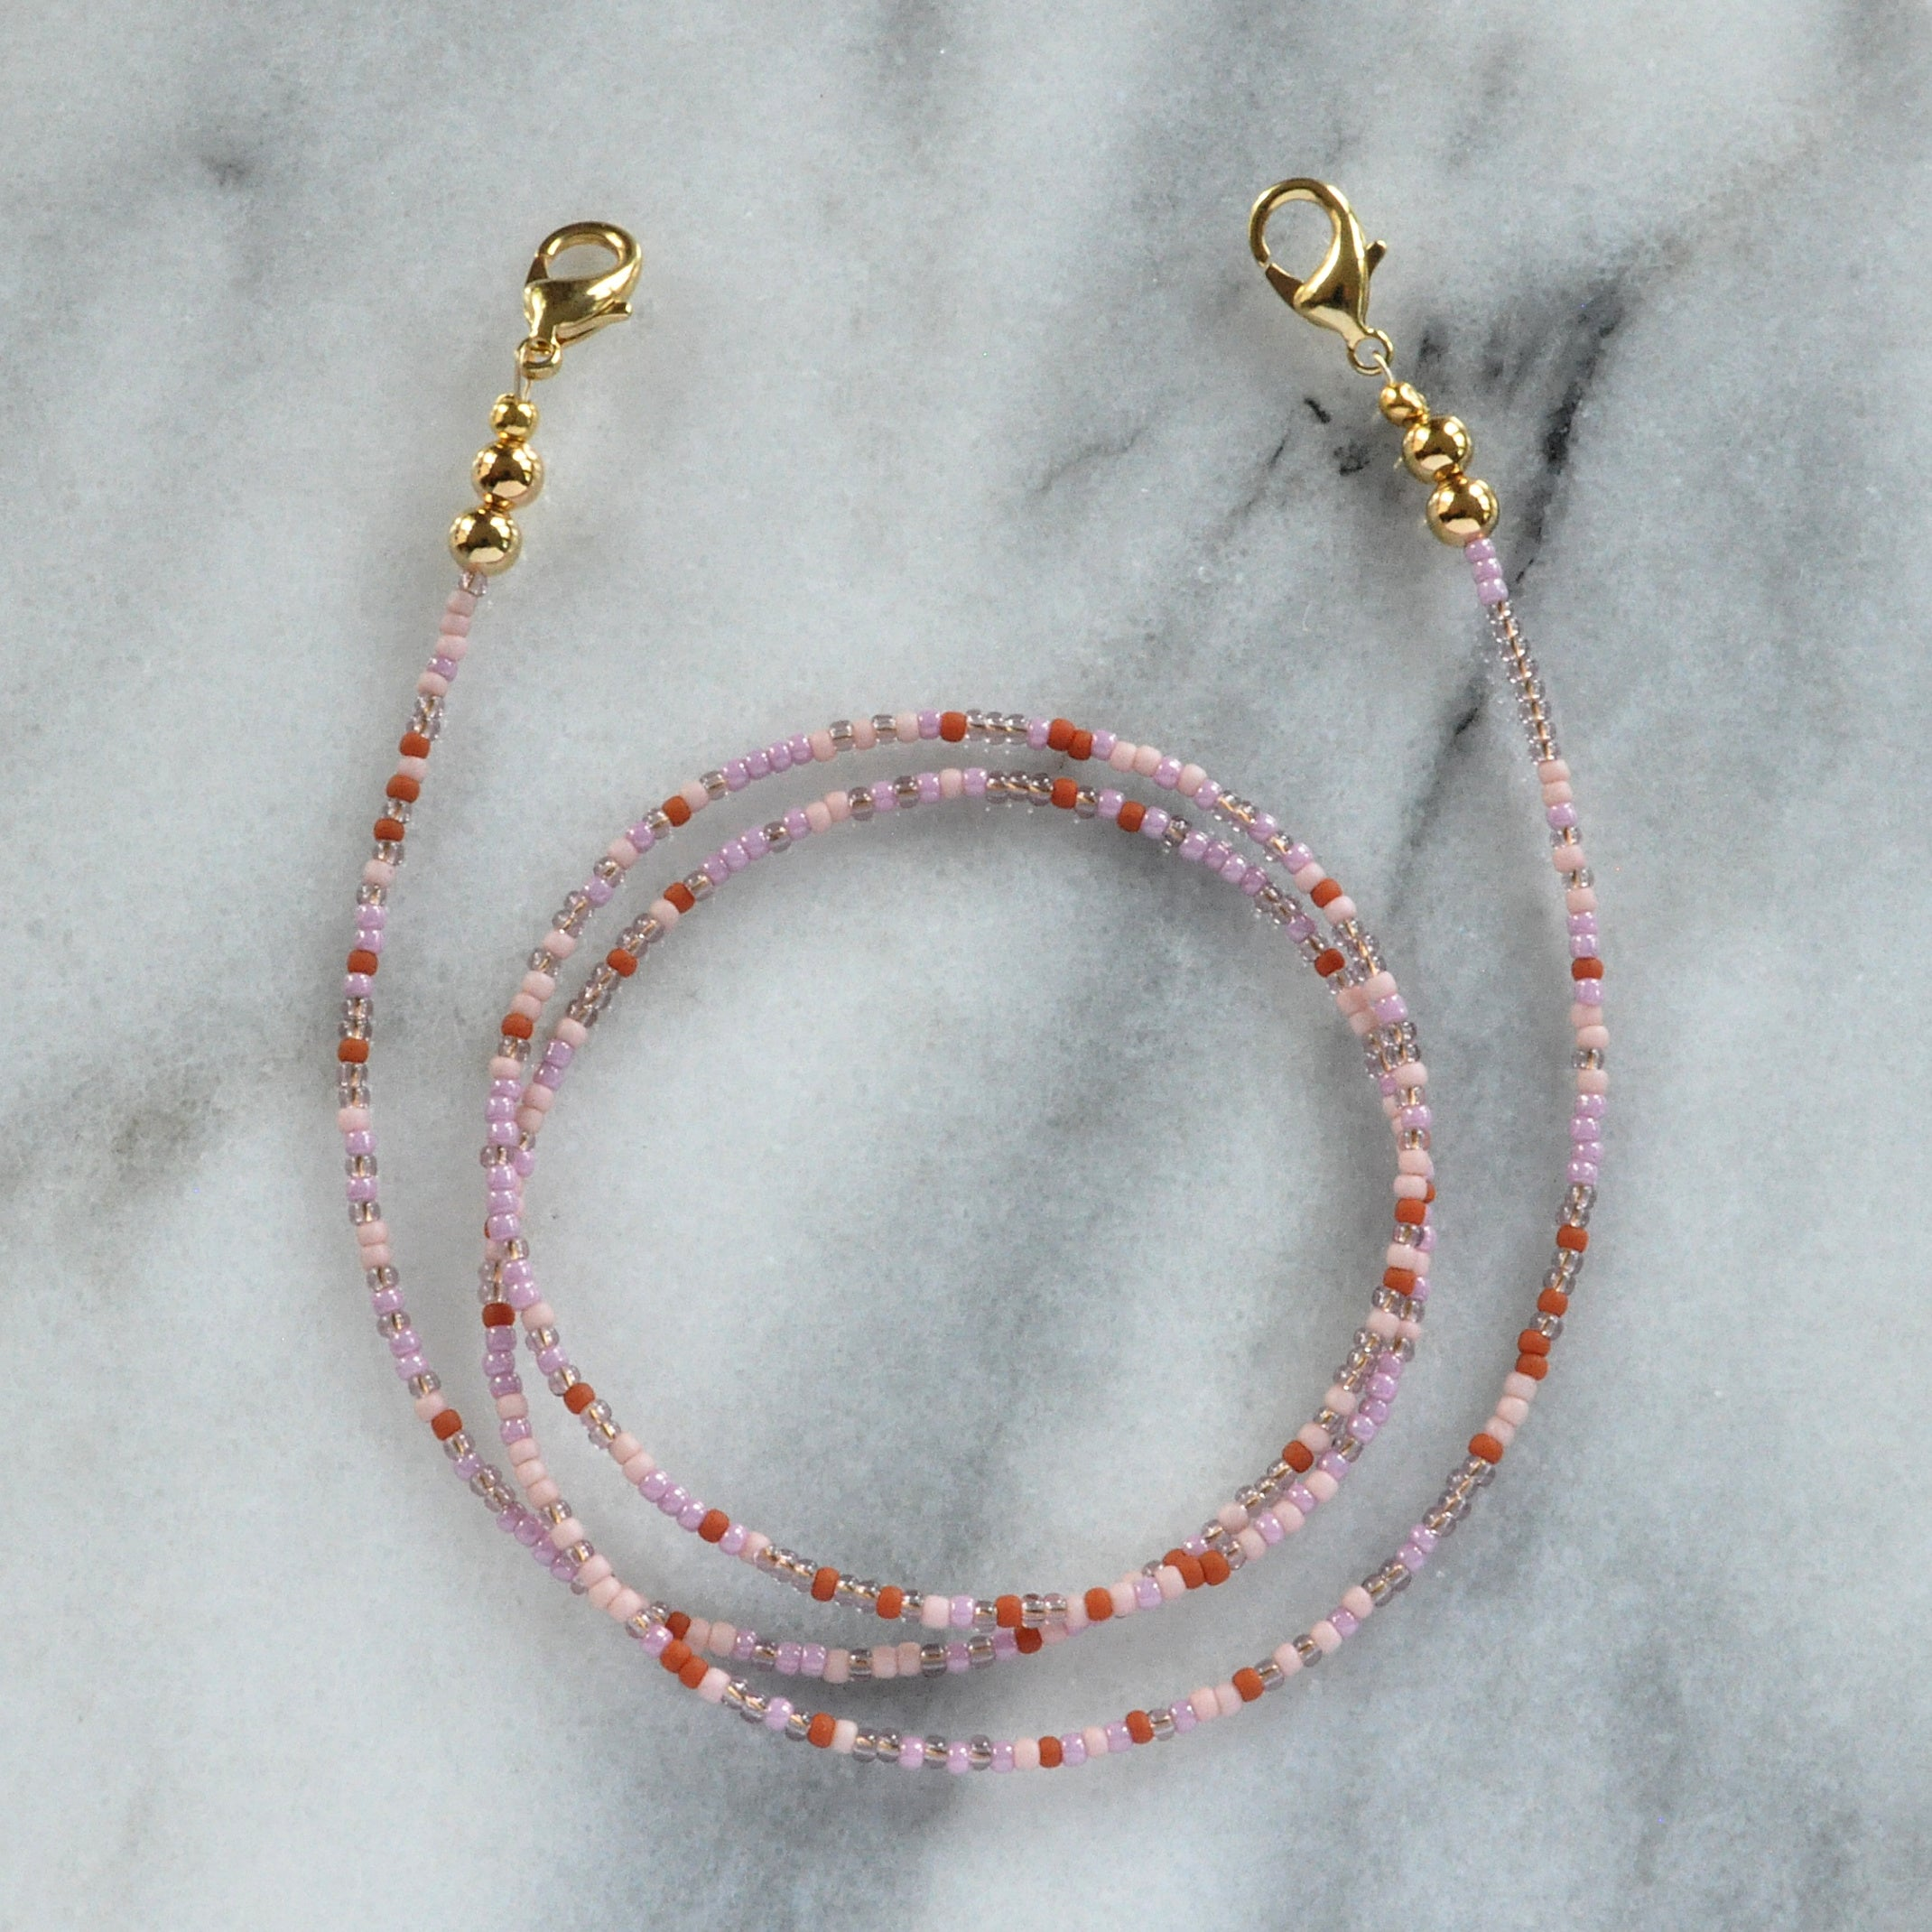 Seed Bead Mask Chains